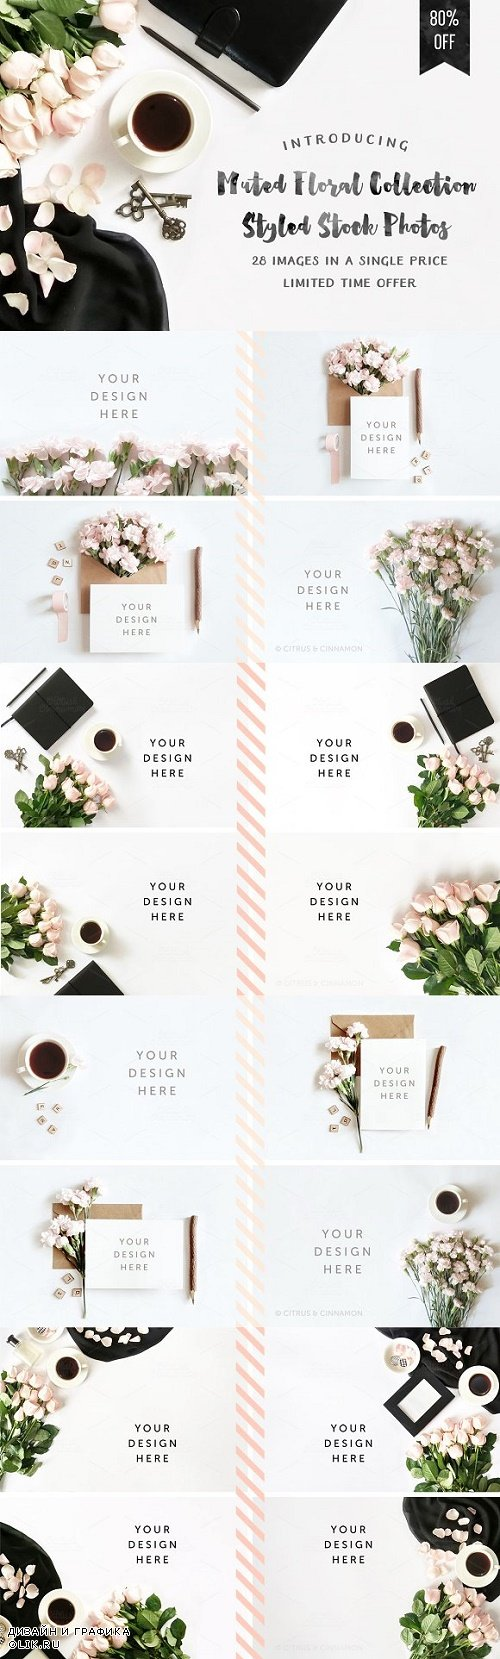 Muted Floral Styled Stock Mockups 1371139